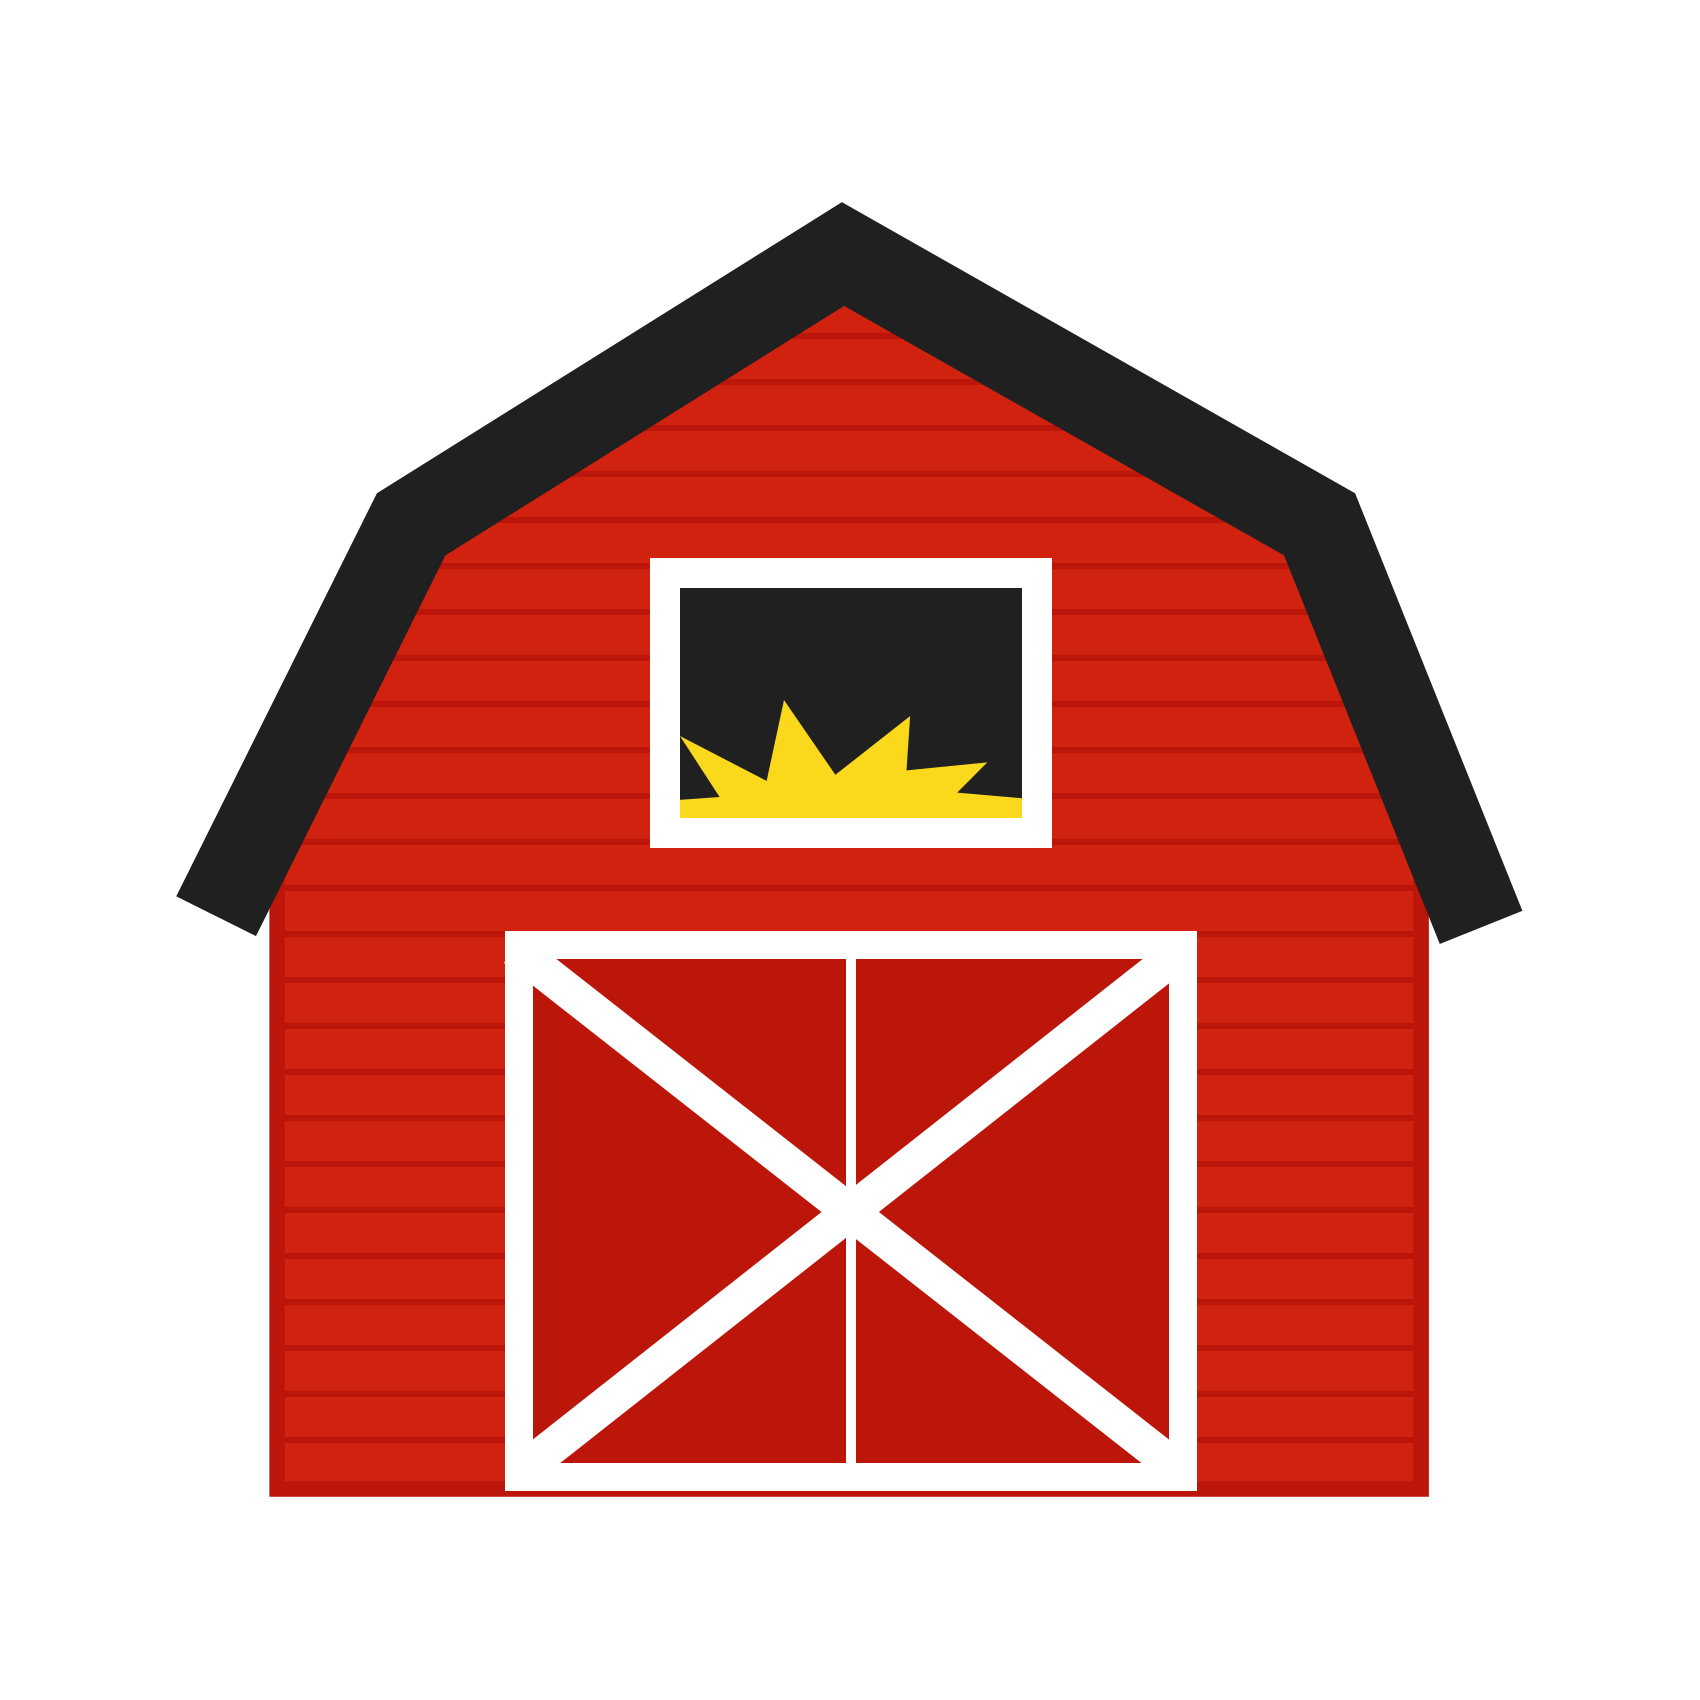 Barn clipart farmyard. Farm clip art hawaii